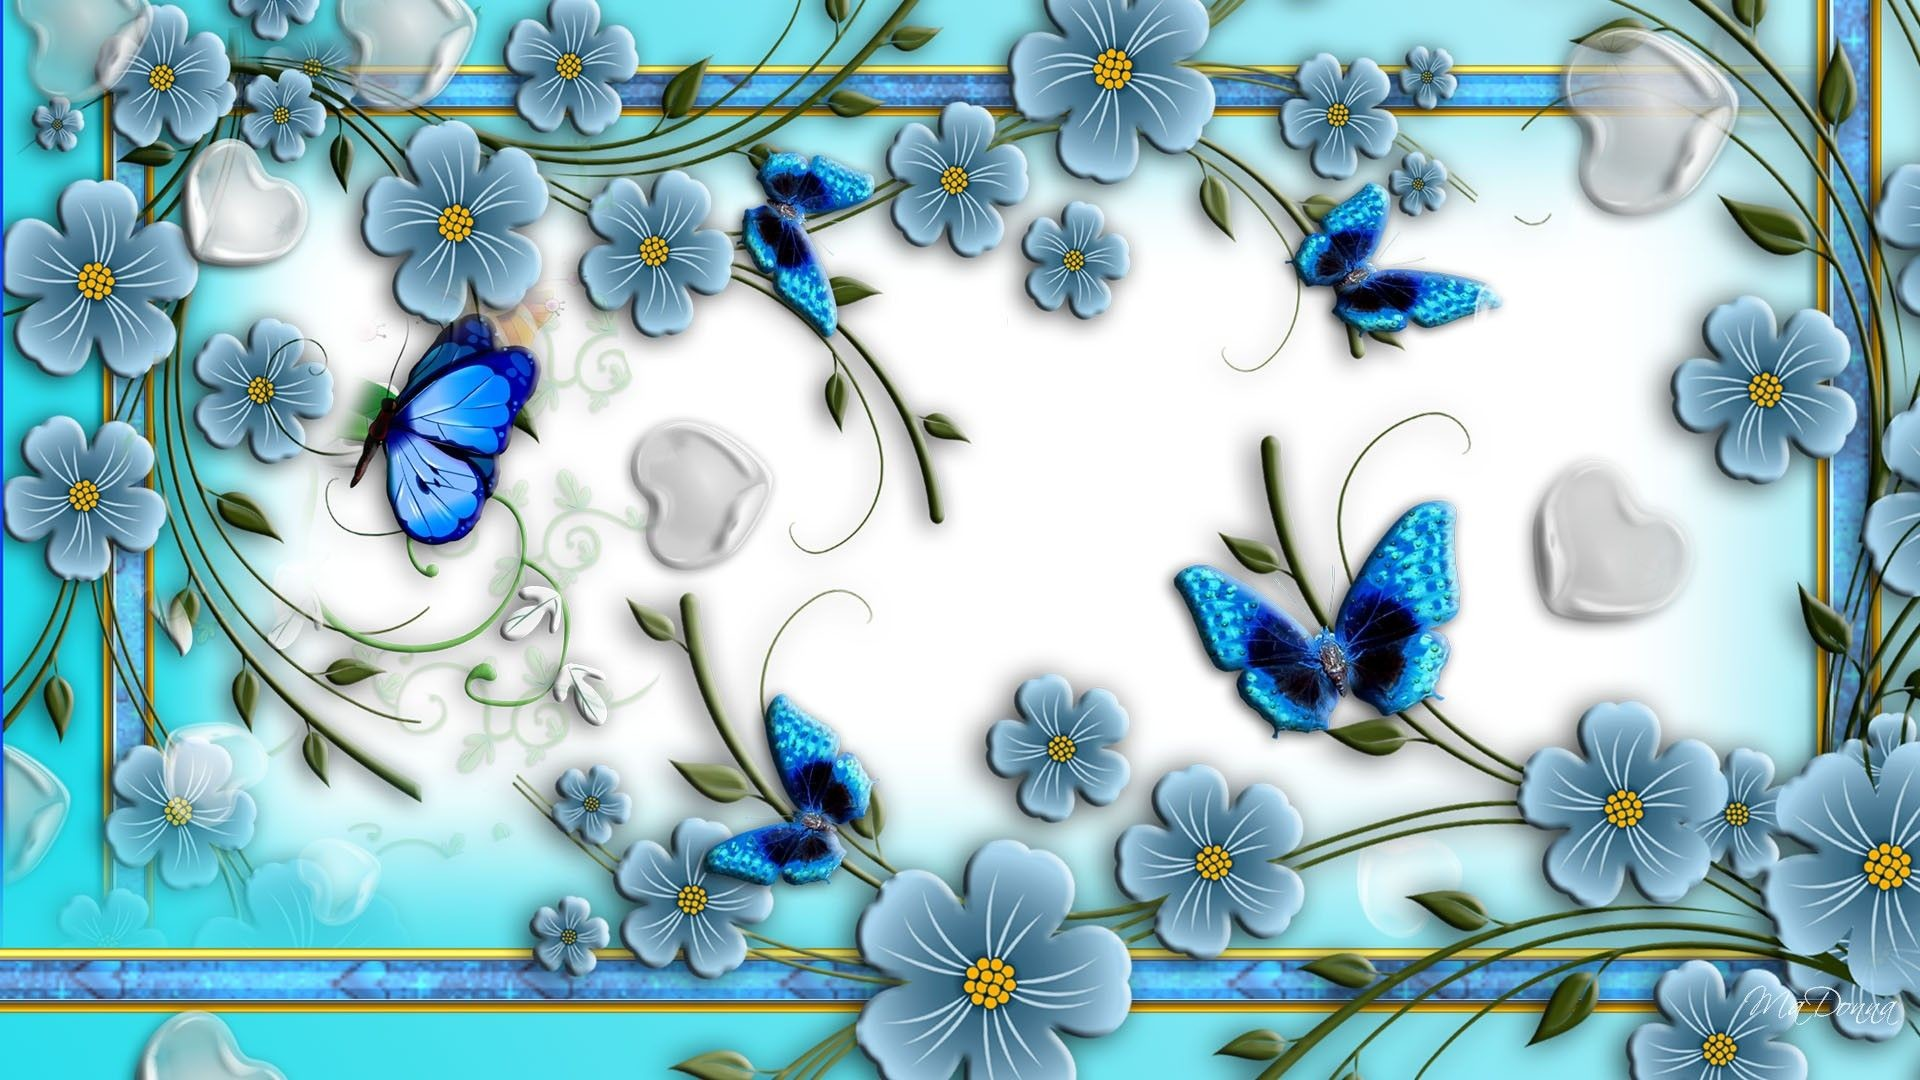 Res: 1920x1080, Download Blue Butterflies Abstract Flowers Unique Nature Wallpaper .